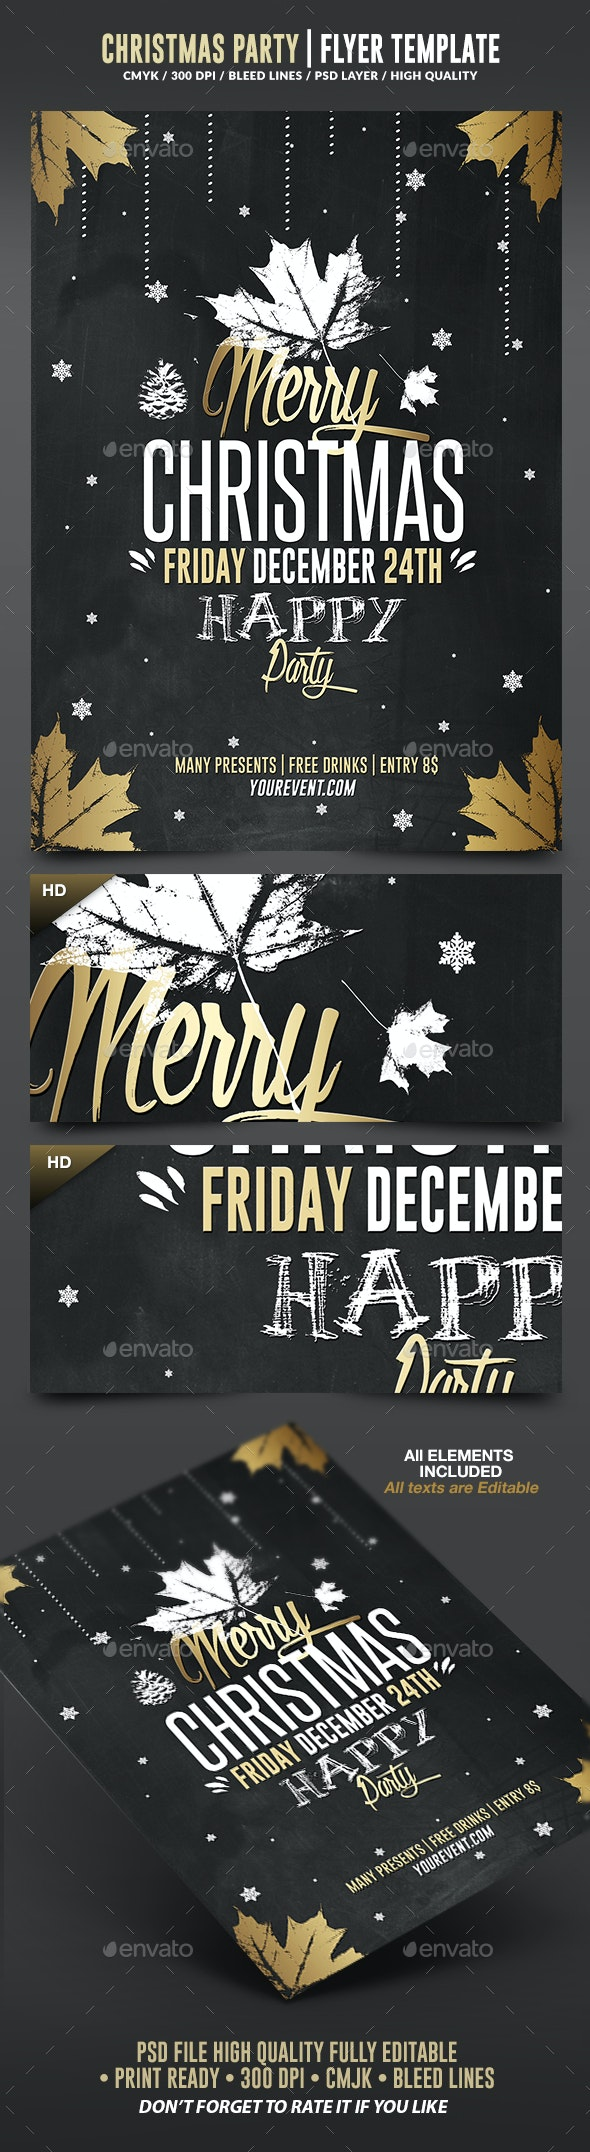 Christmas 2016   Psd Flyer Template - Holidays Events